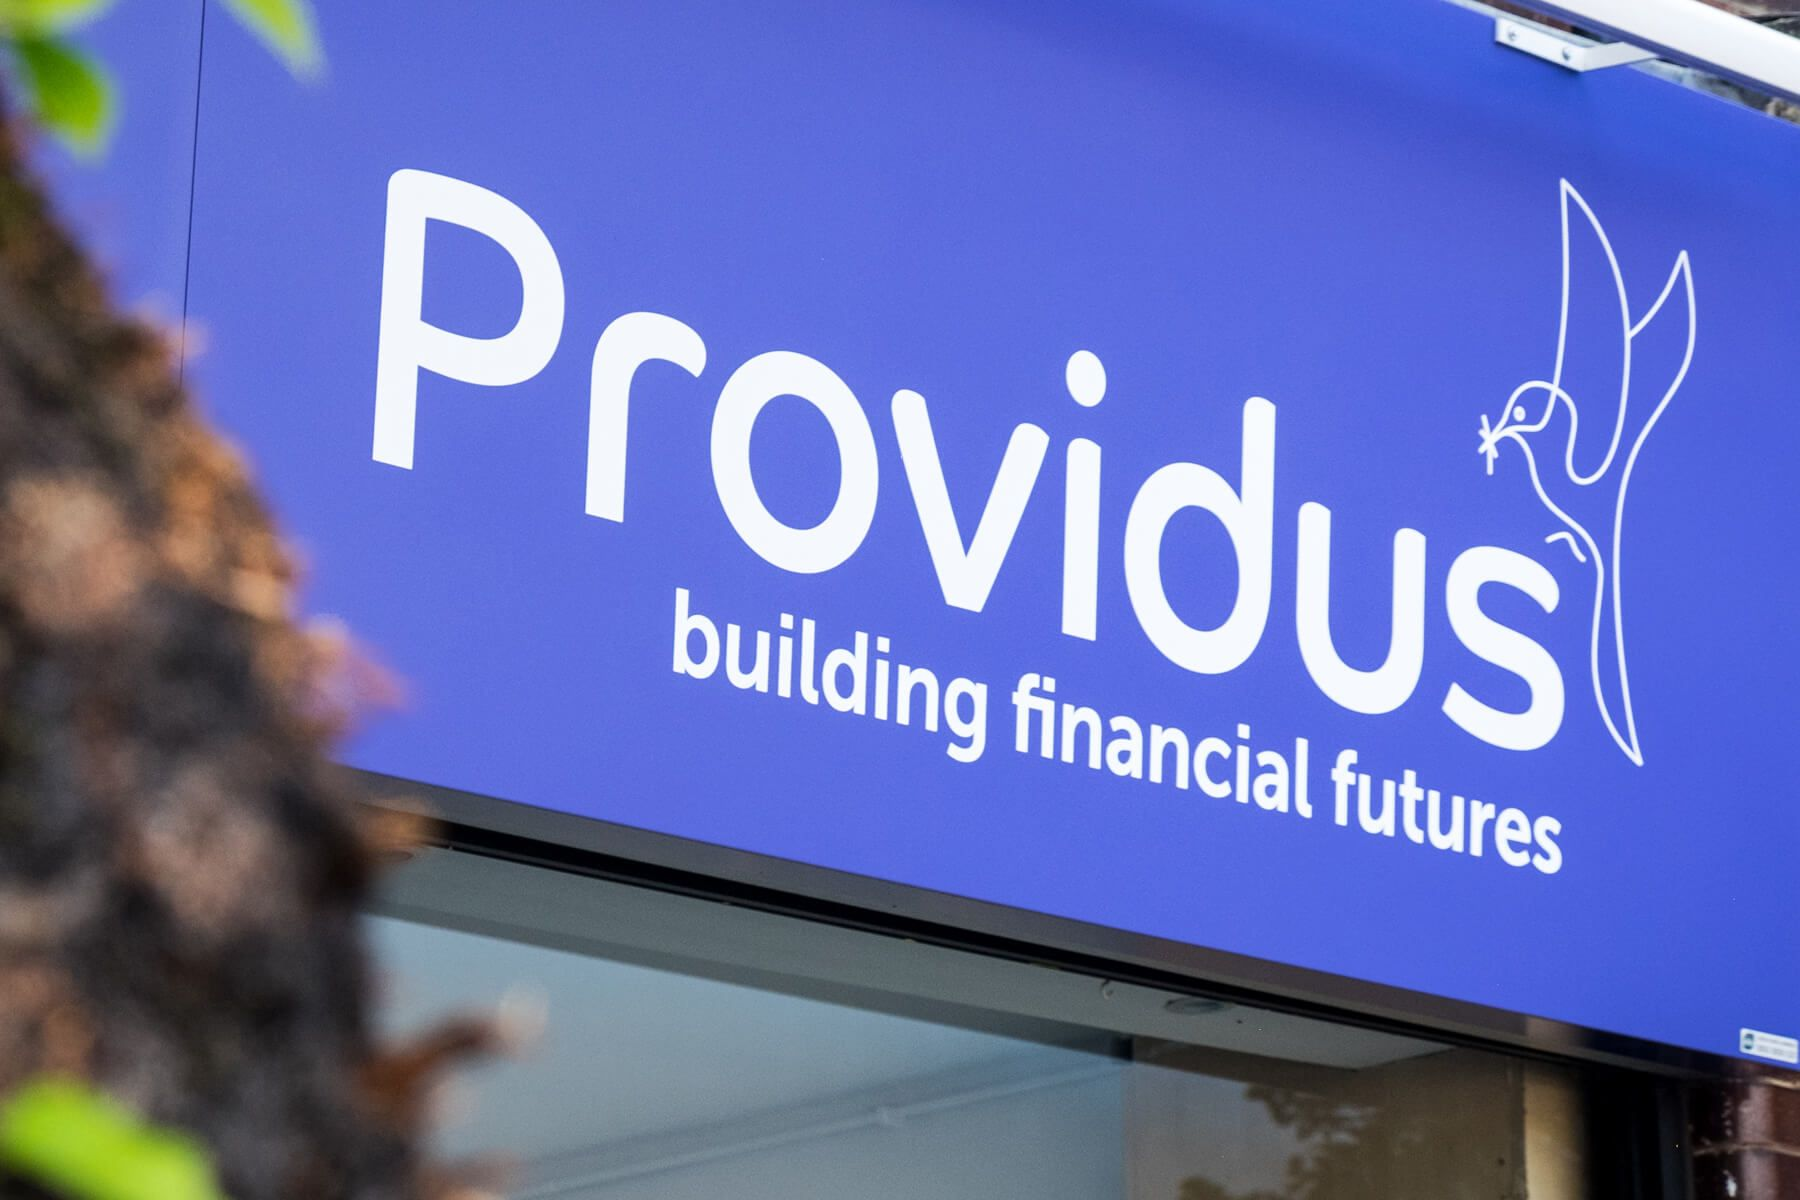 Providus Financial / Aligning a brand to financial assurance